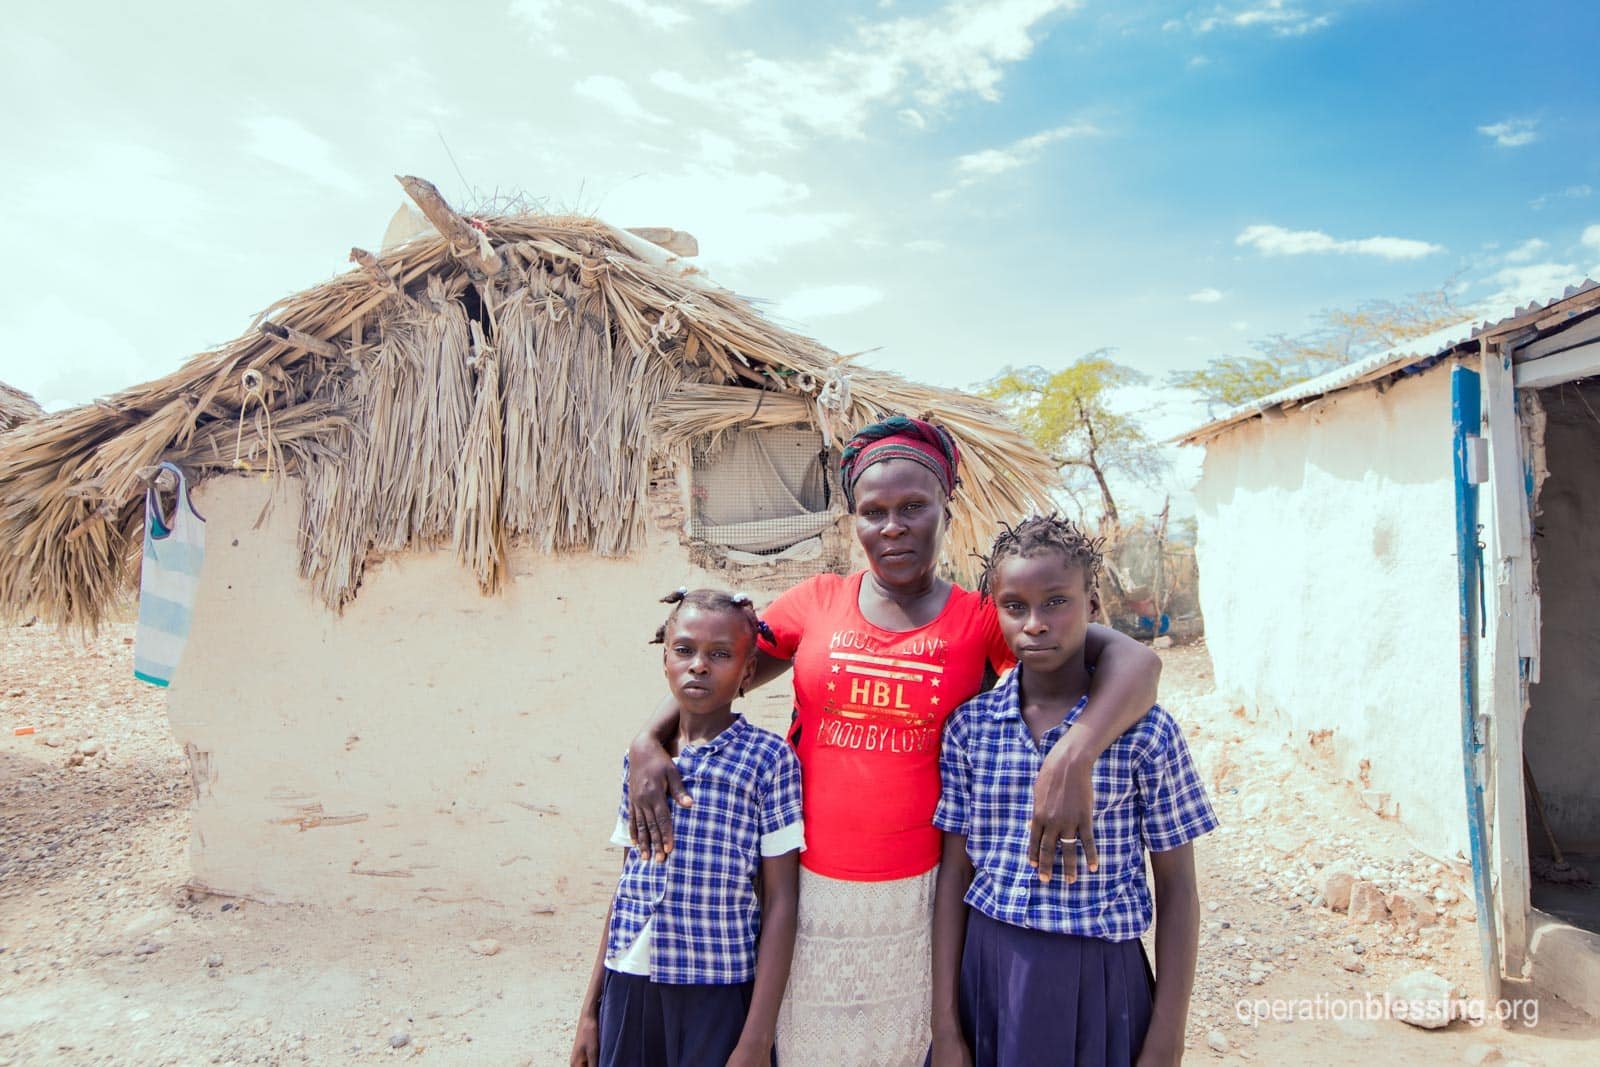 A Haitian family stands in front of their hut-like home.